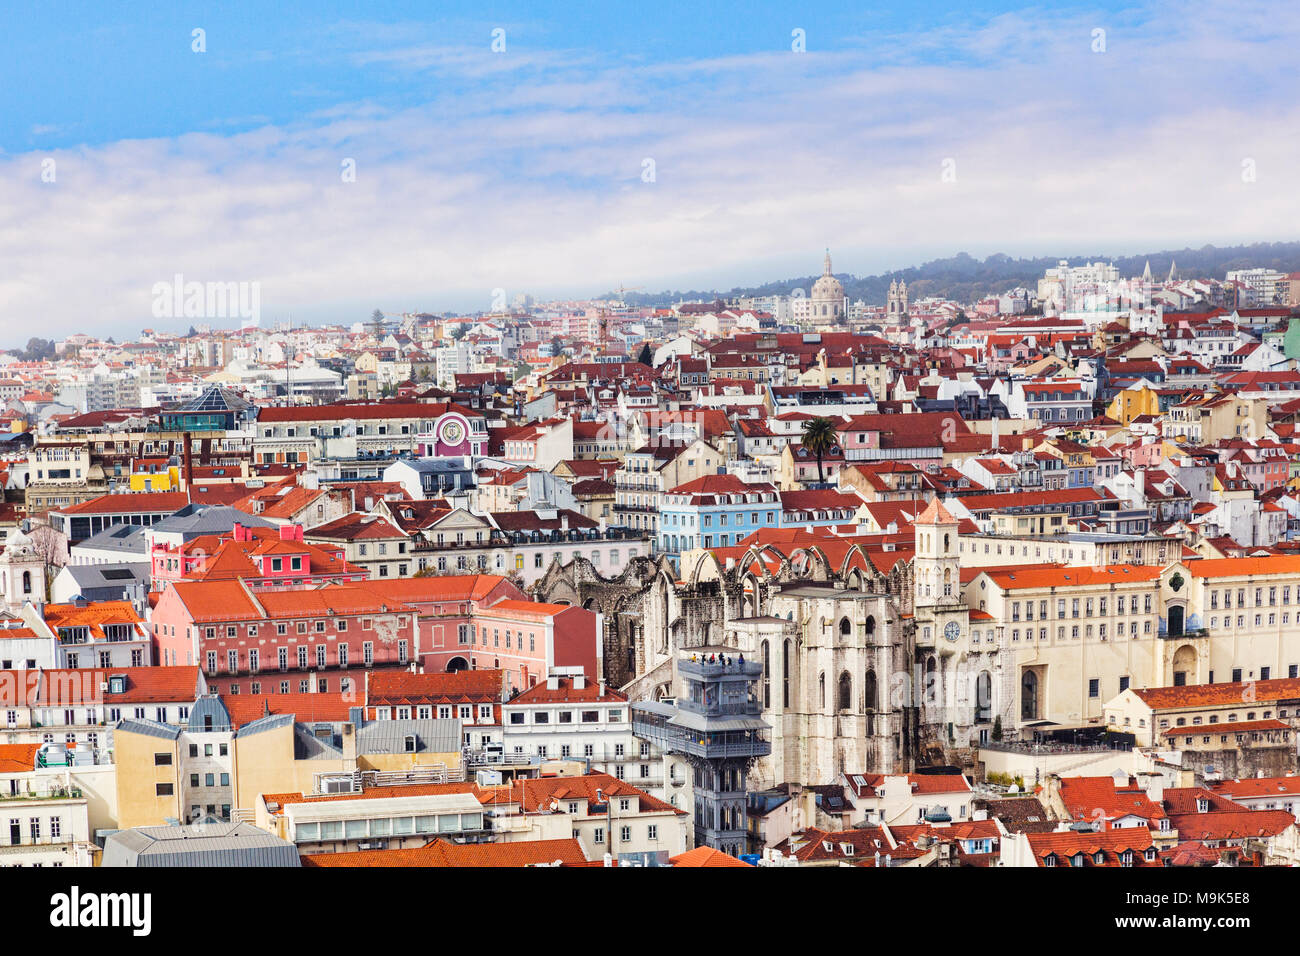 1 March 2013: Lisbon, Portugal - A view of the city from the Moorish Castle, with the Santa Justa Lift in the middle. - Stock Image